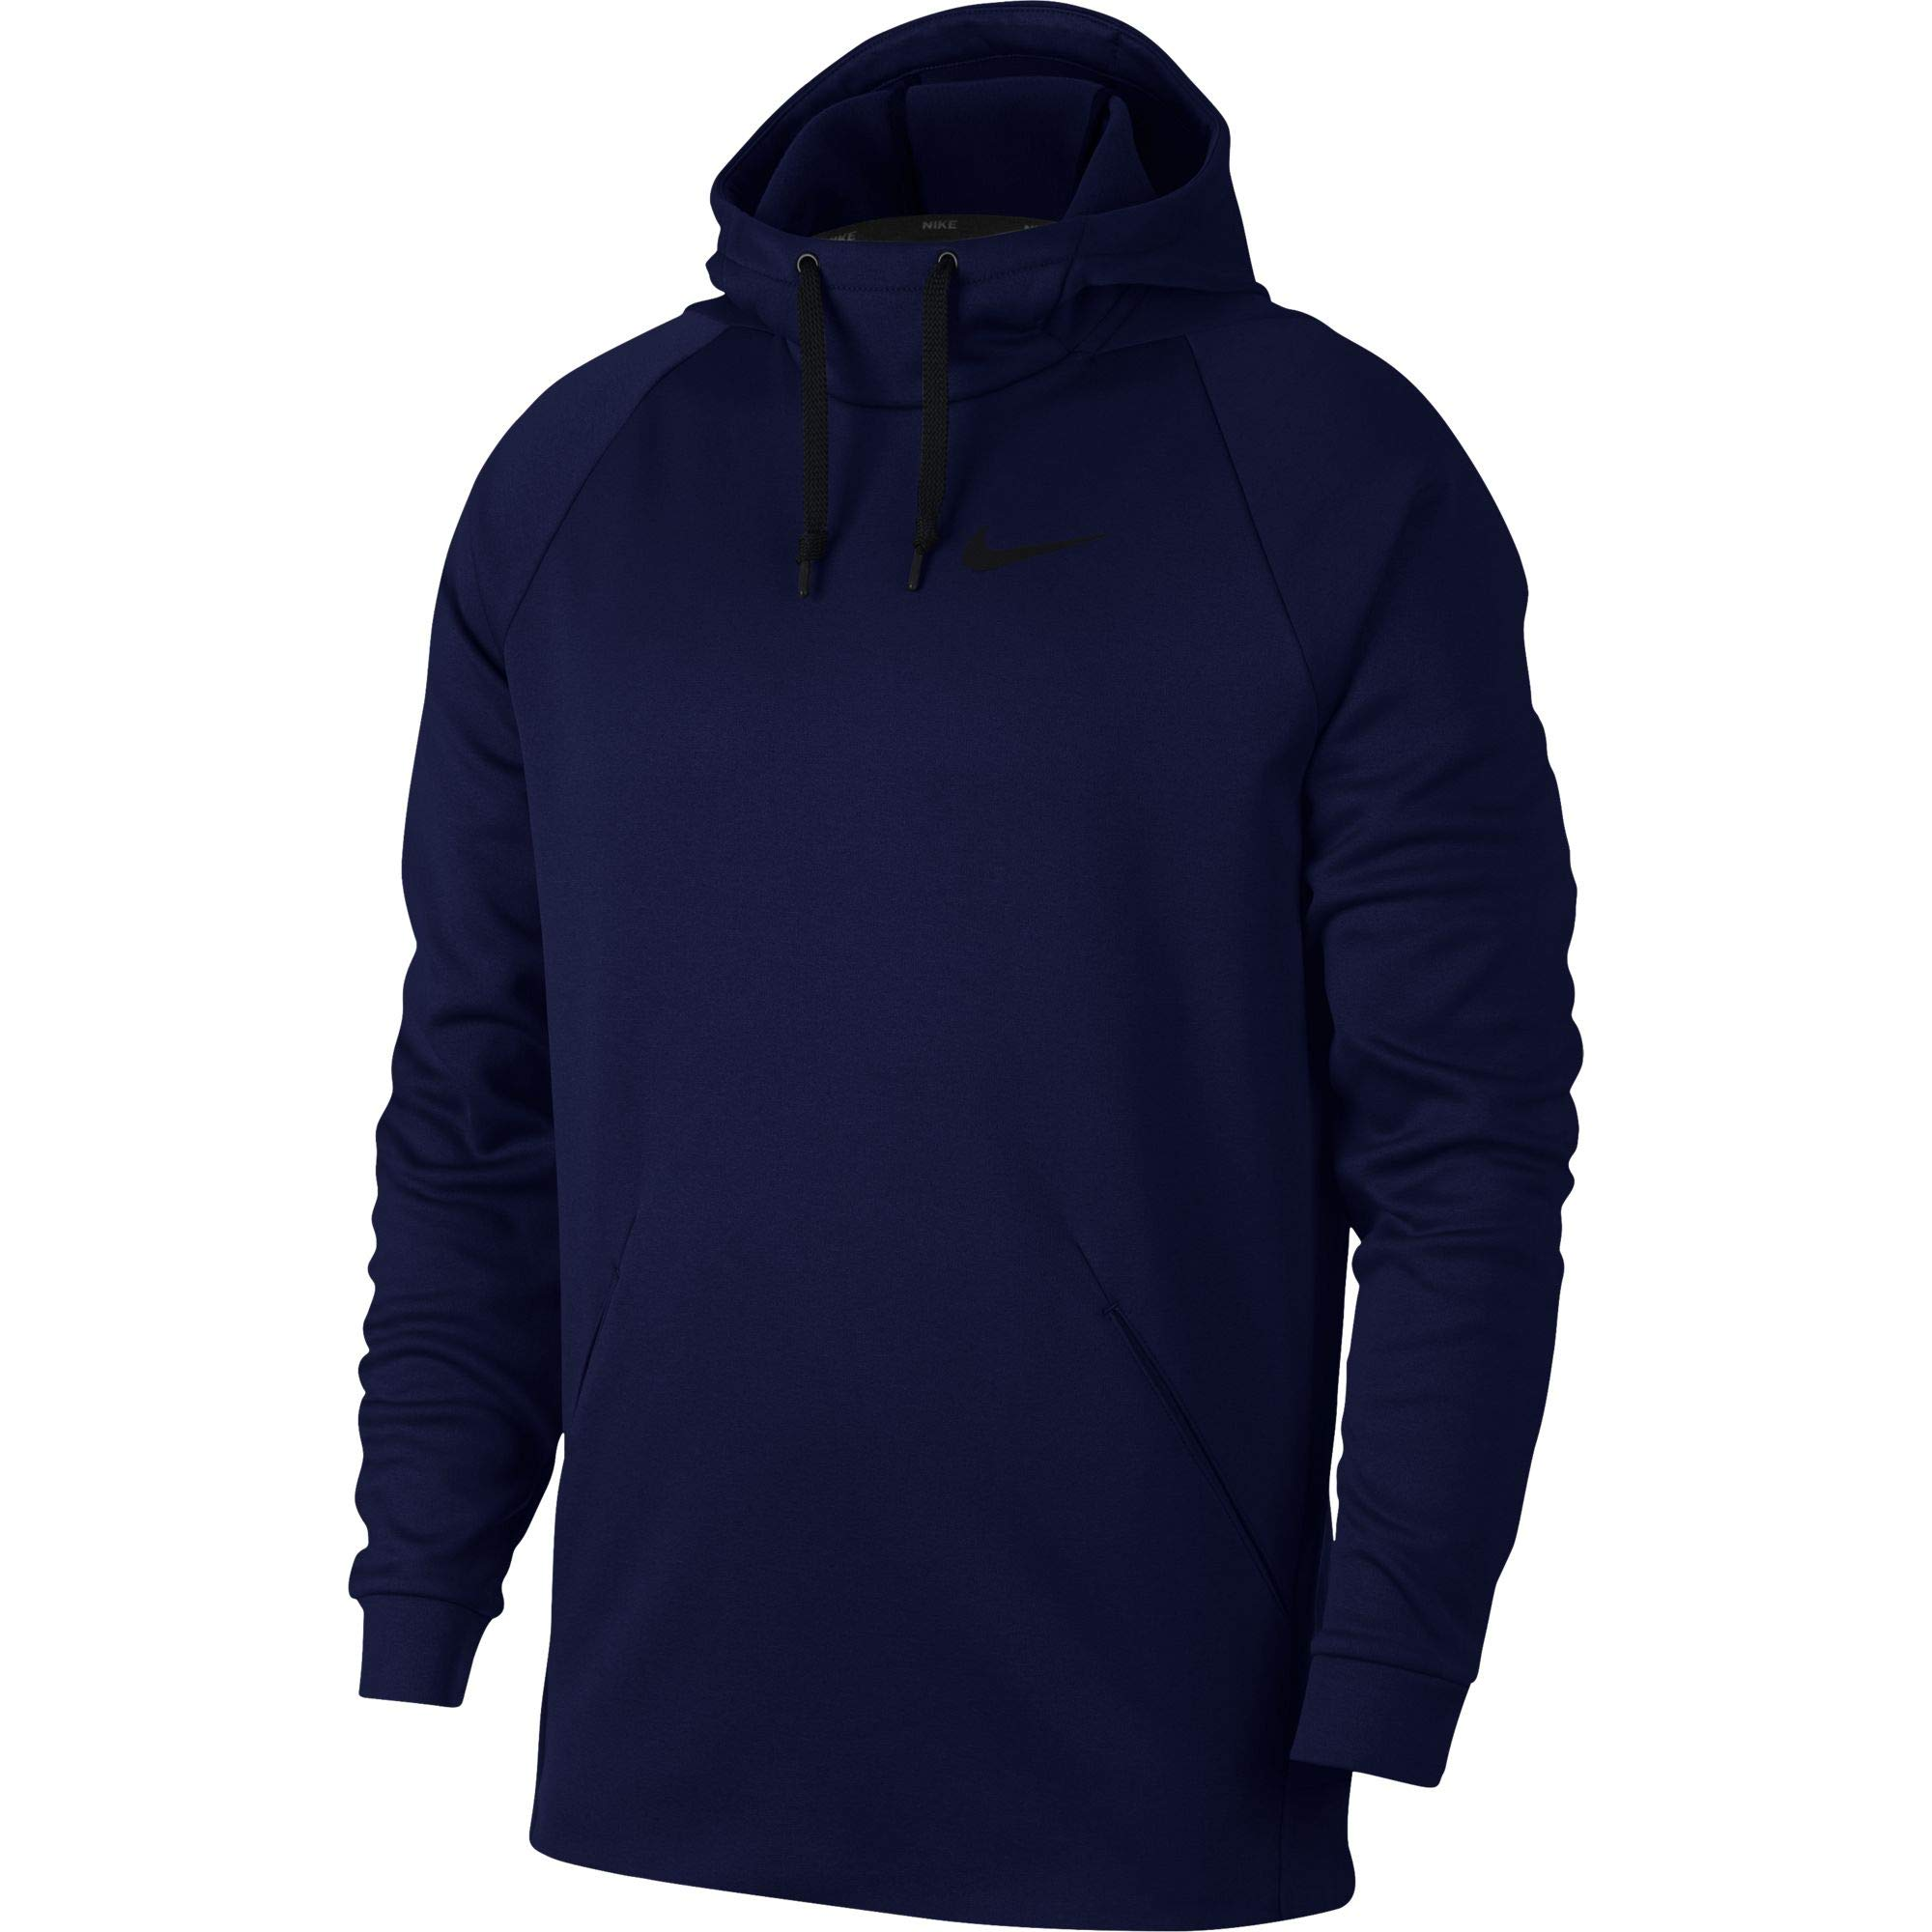 Nike Men's Therma Training Hoodie Blue Void/Black, Size Small